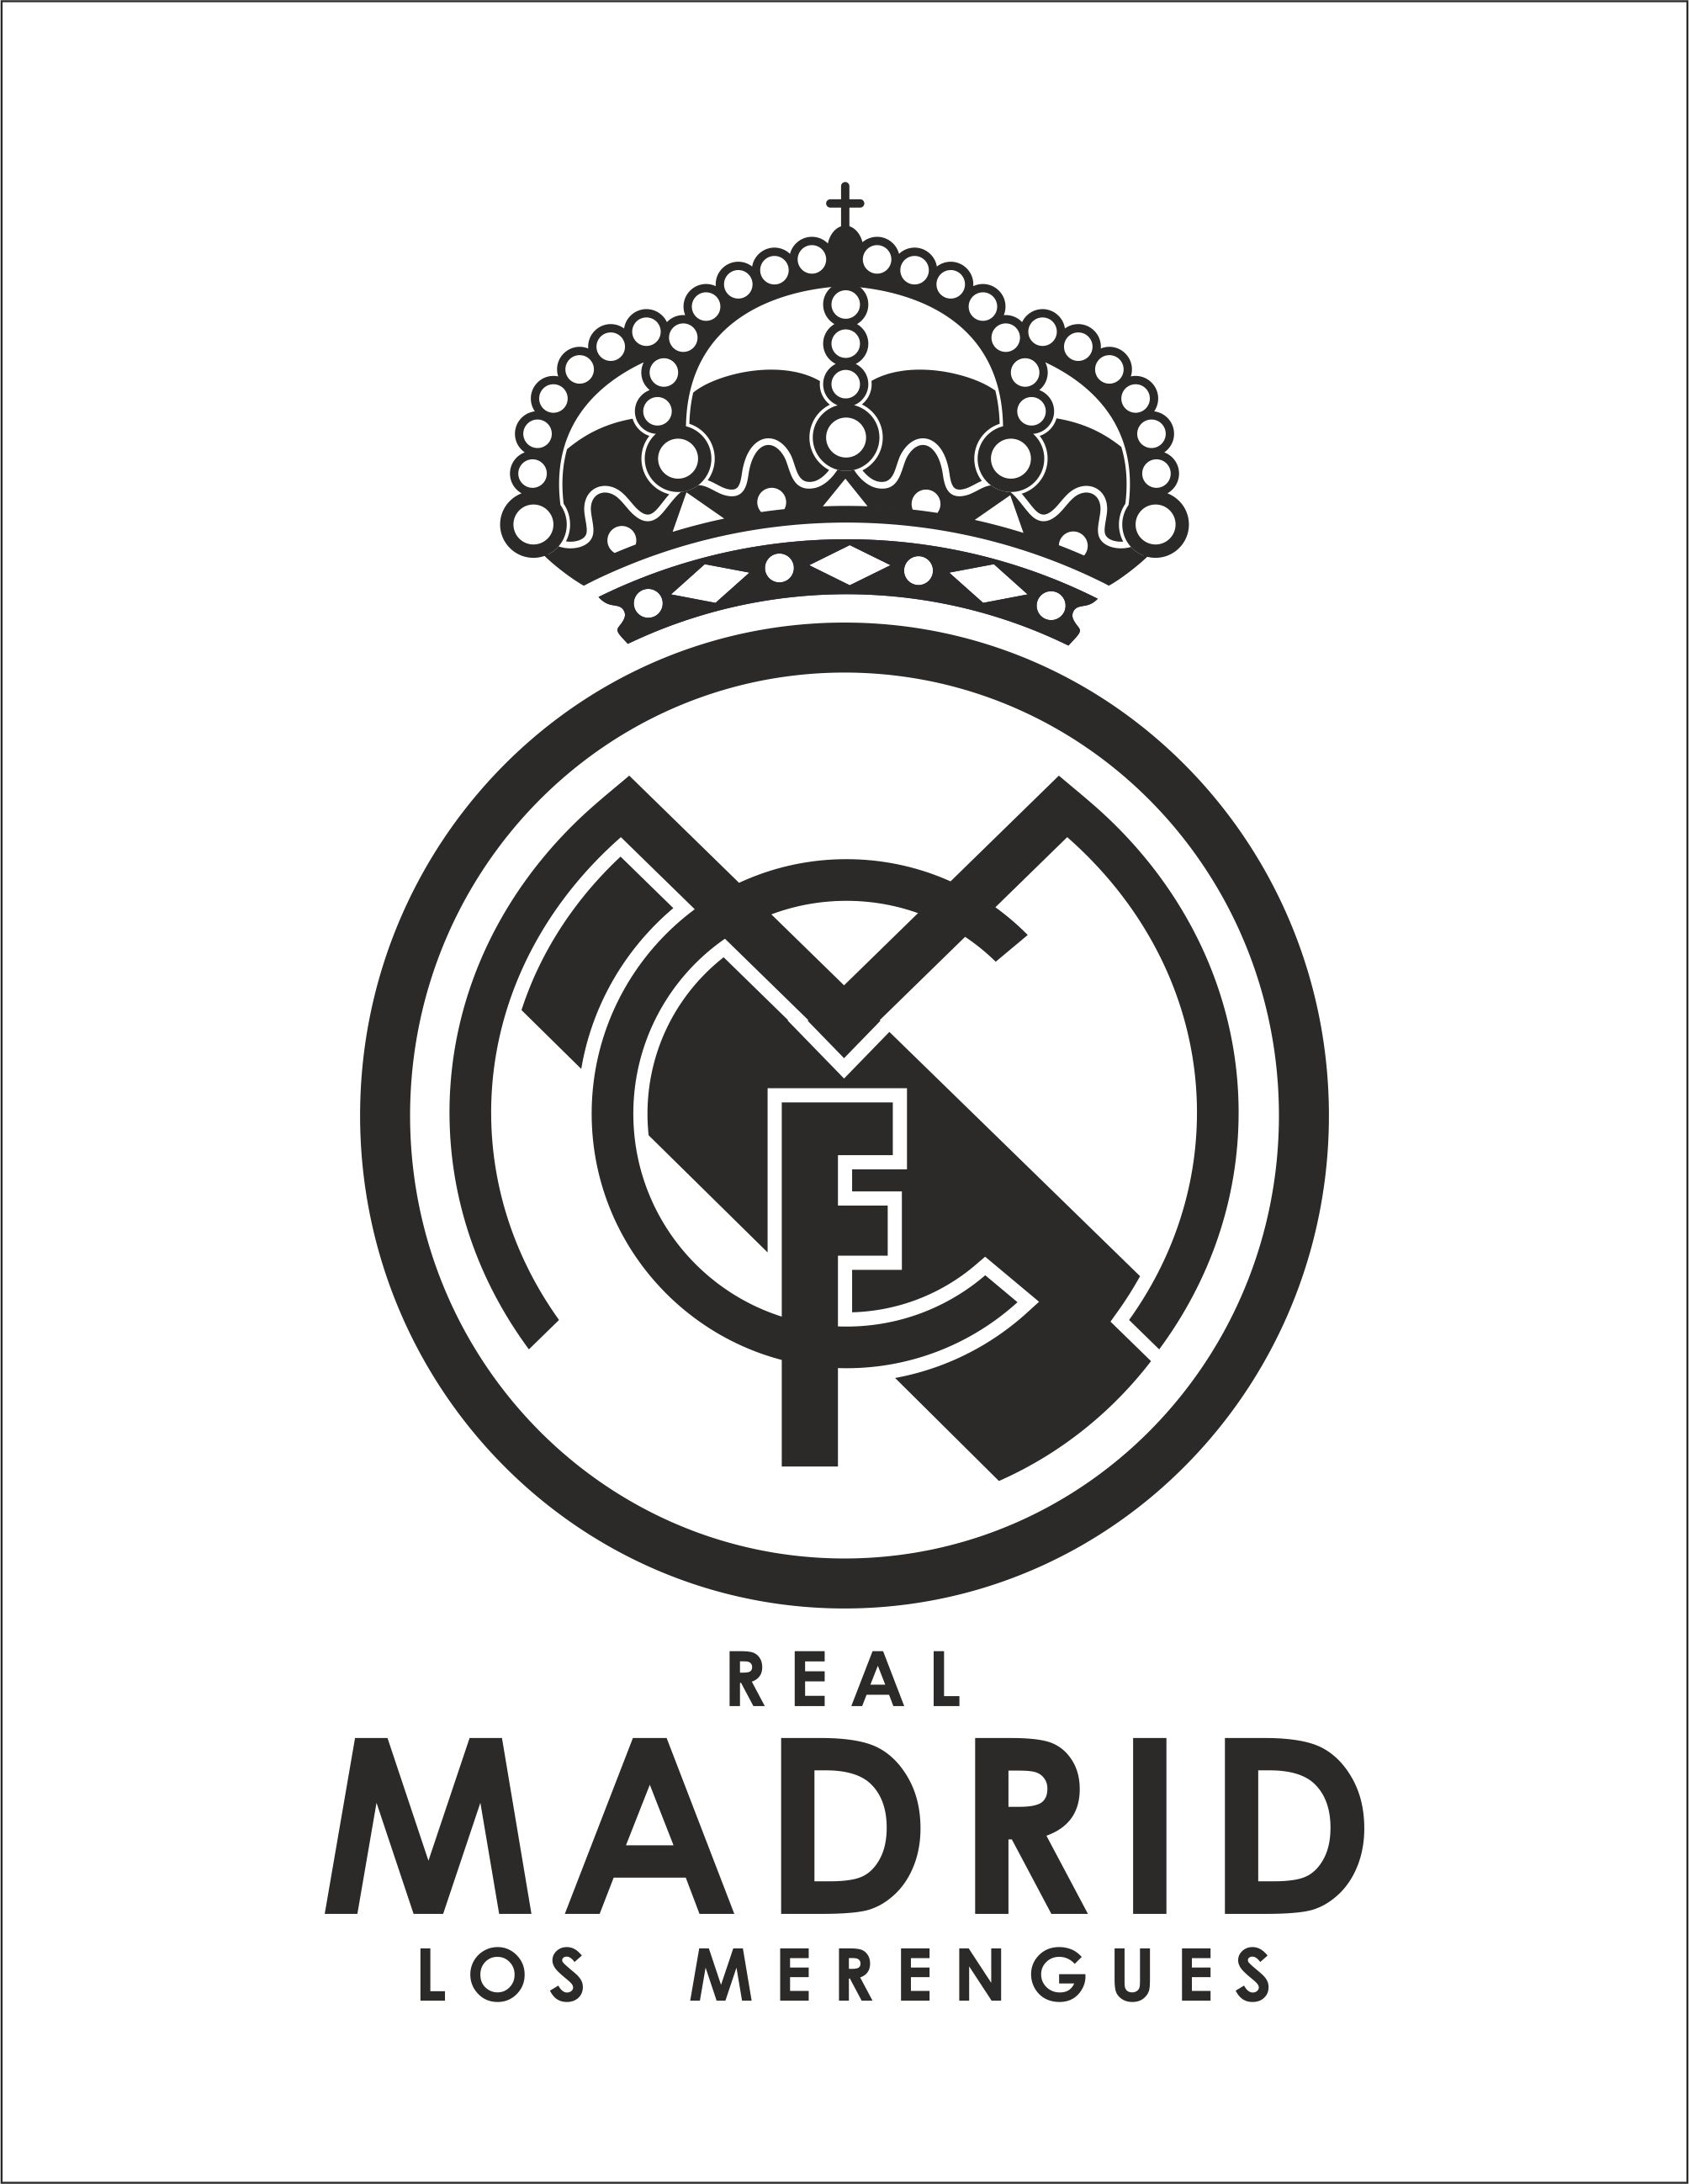 Real Madrid vector image in Corel Draw